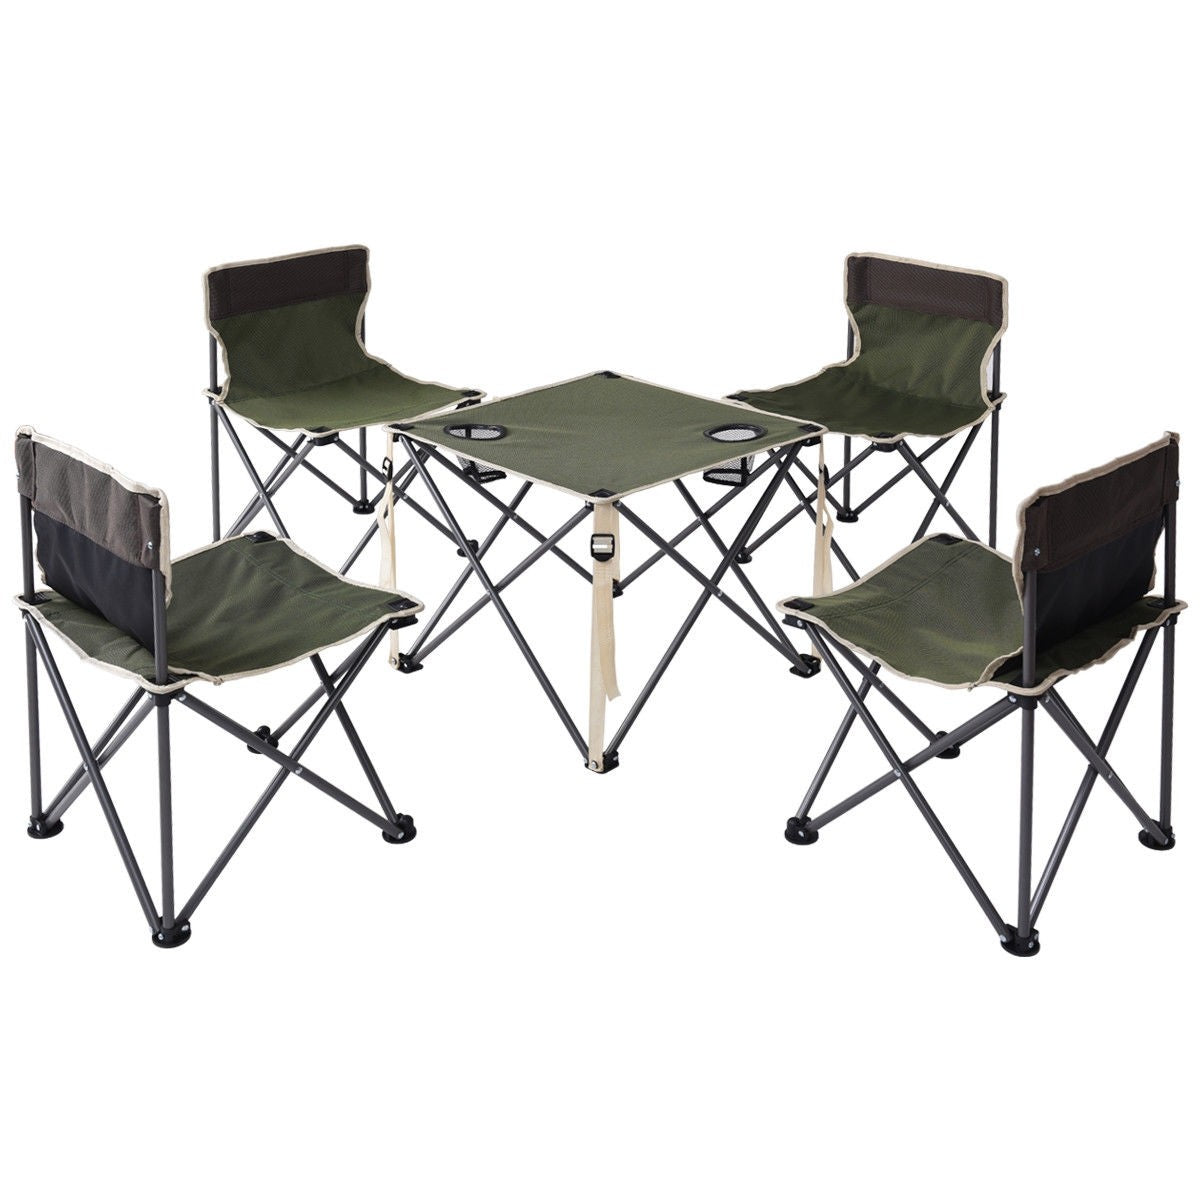 - Outdoor Camp Portable Folding Table Chairs Set W/ Carrying Bag